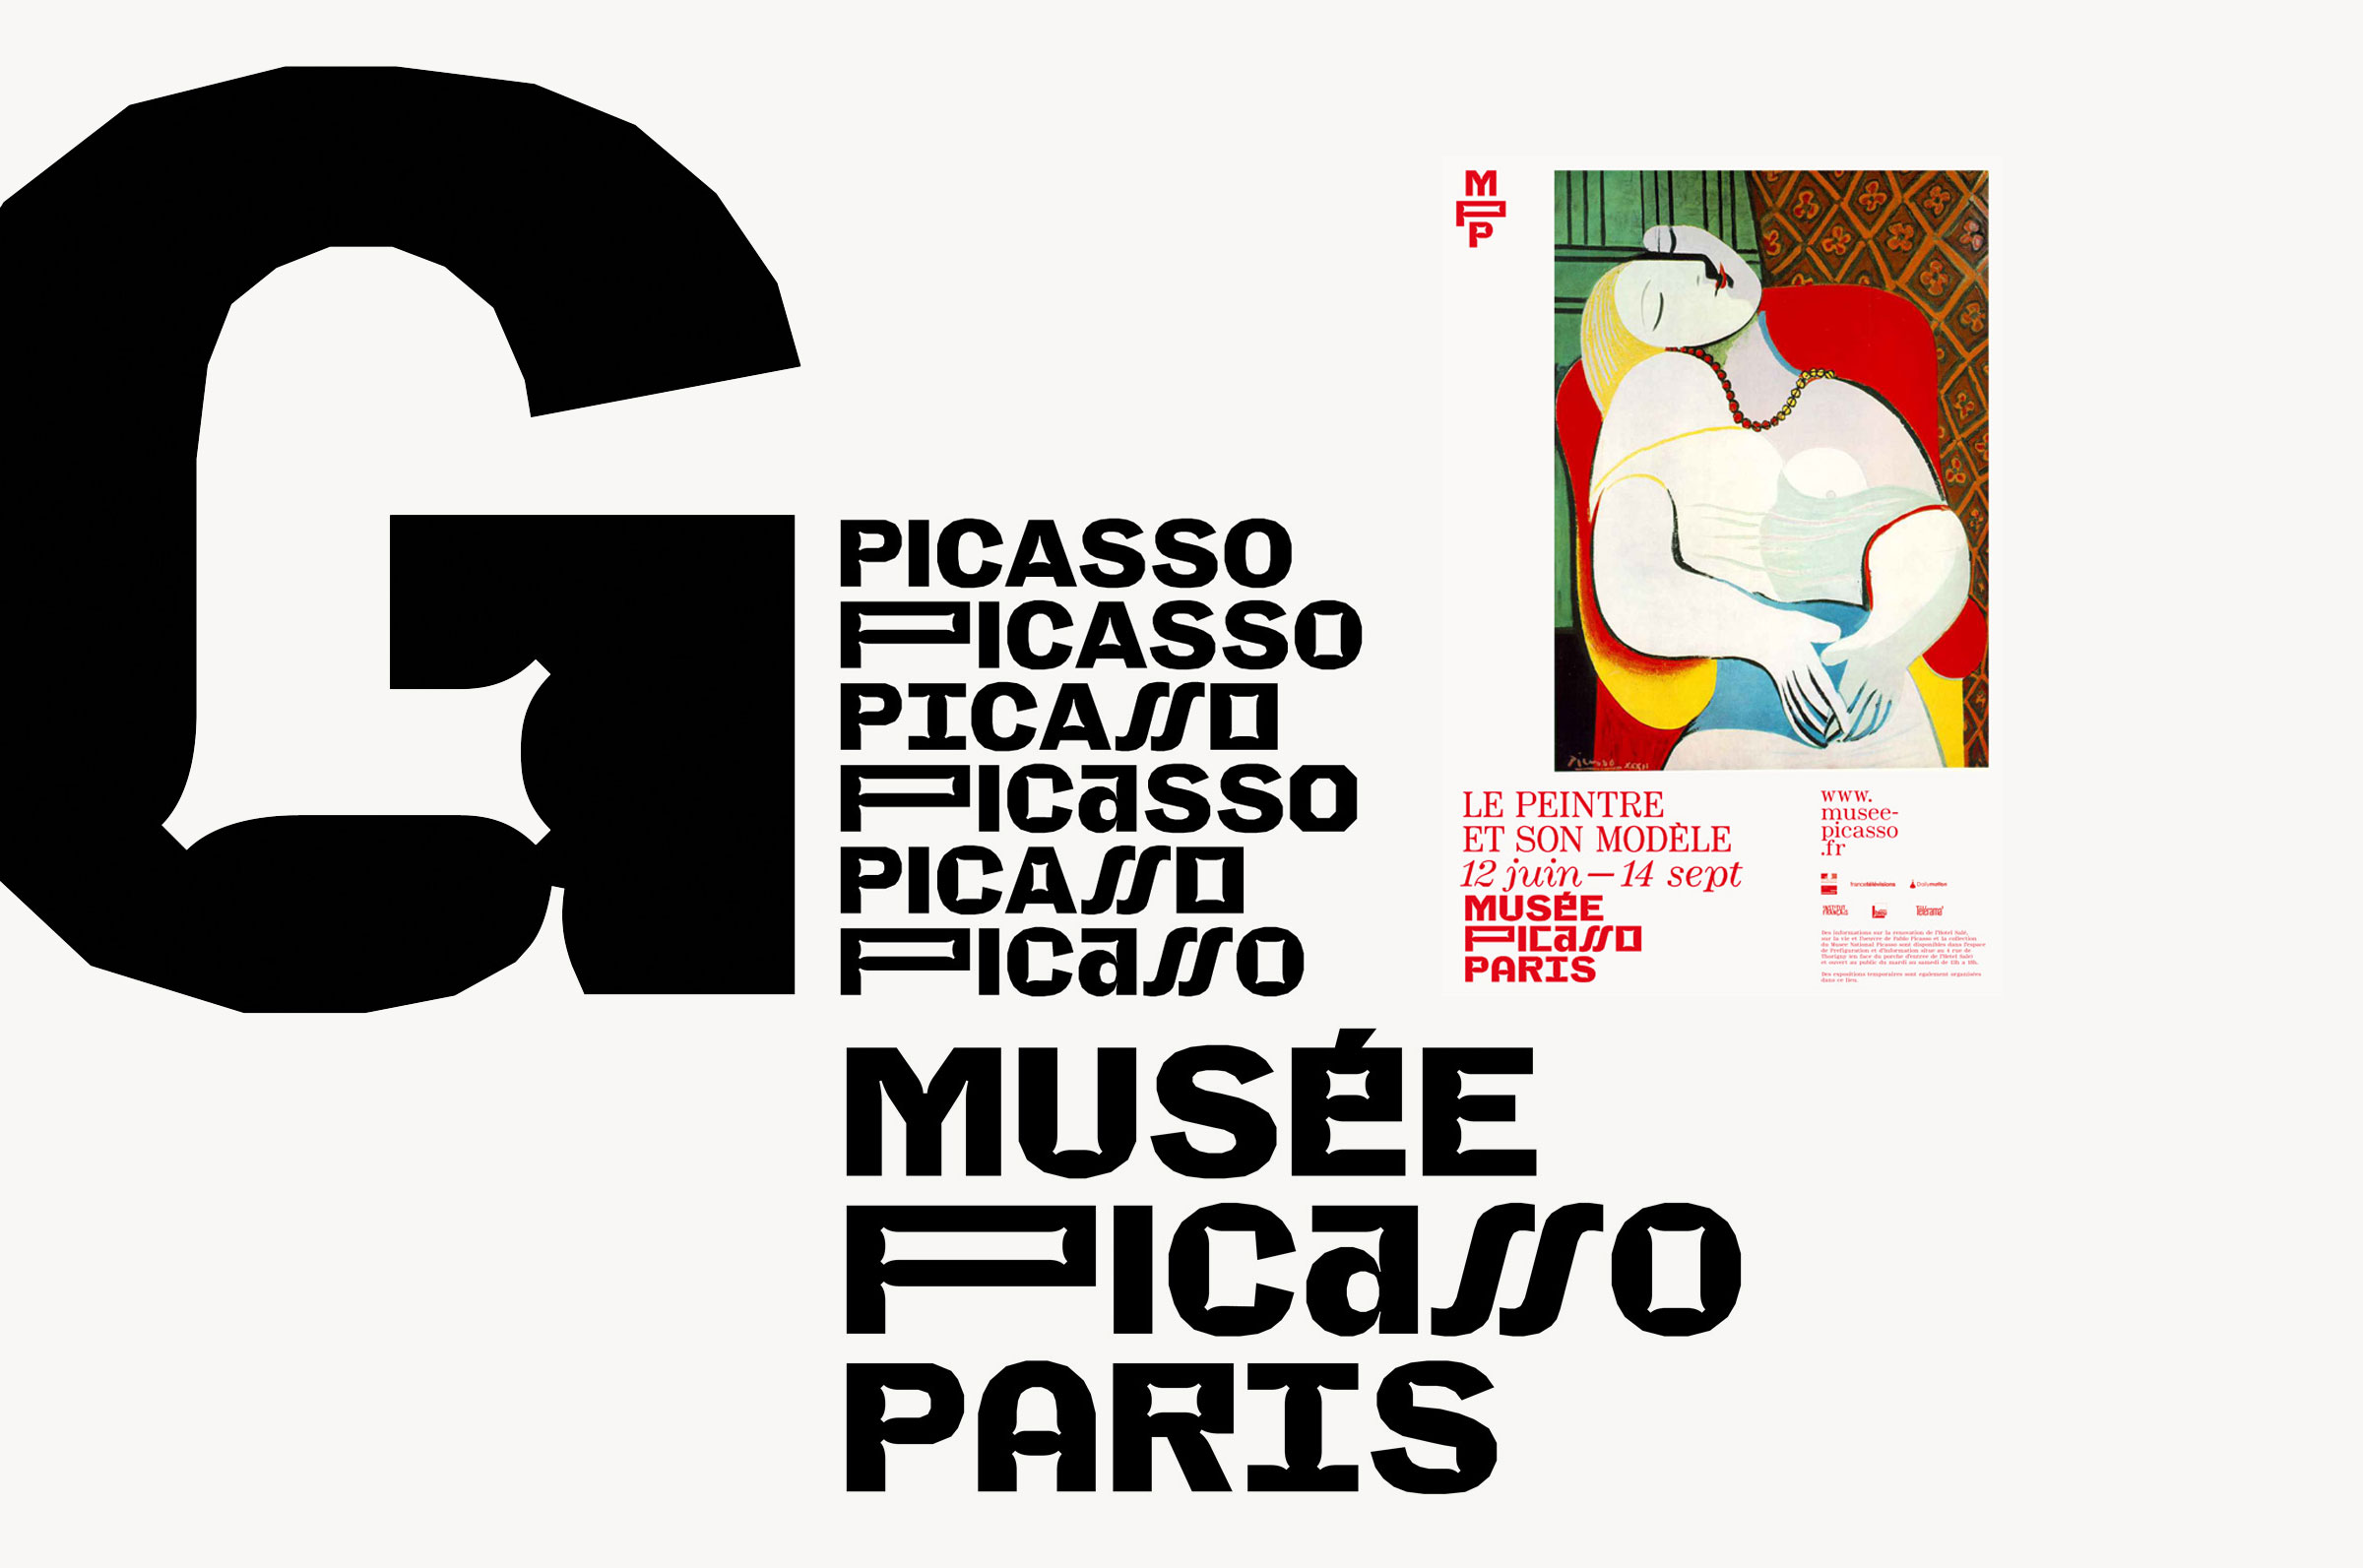 julien-lelievre-musee-picasso-typographie-identite-interview-index-grafik